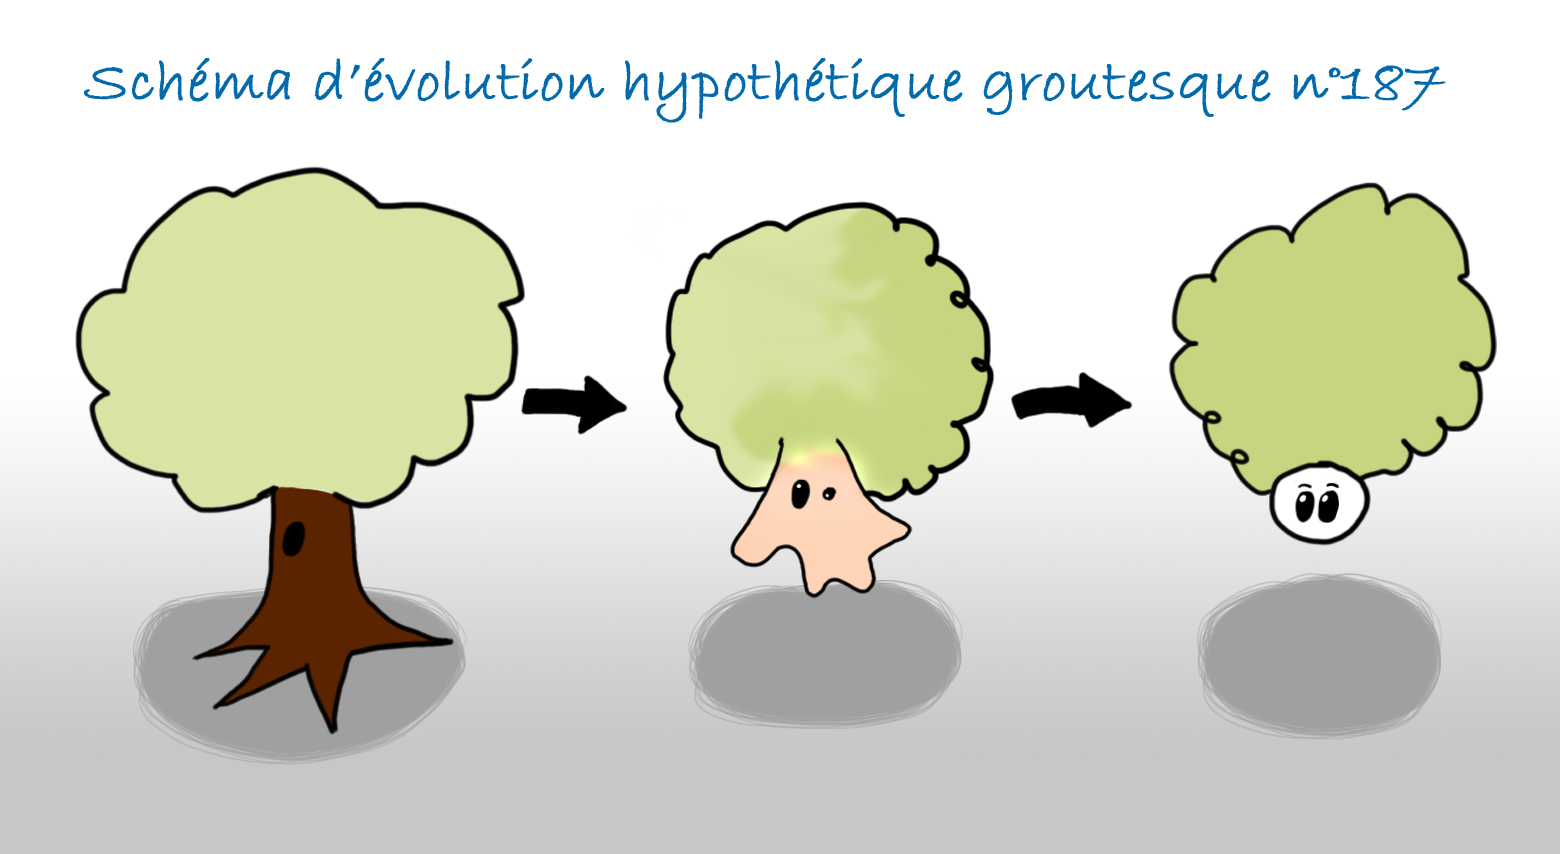 groutree